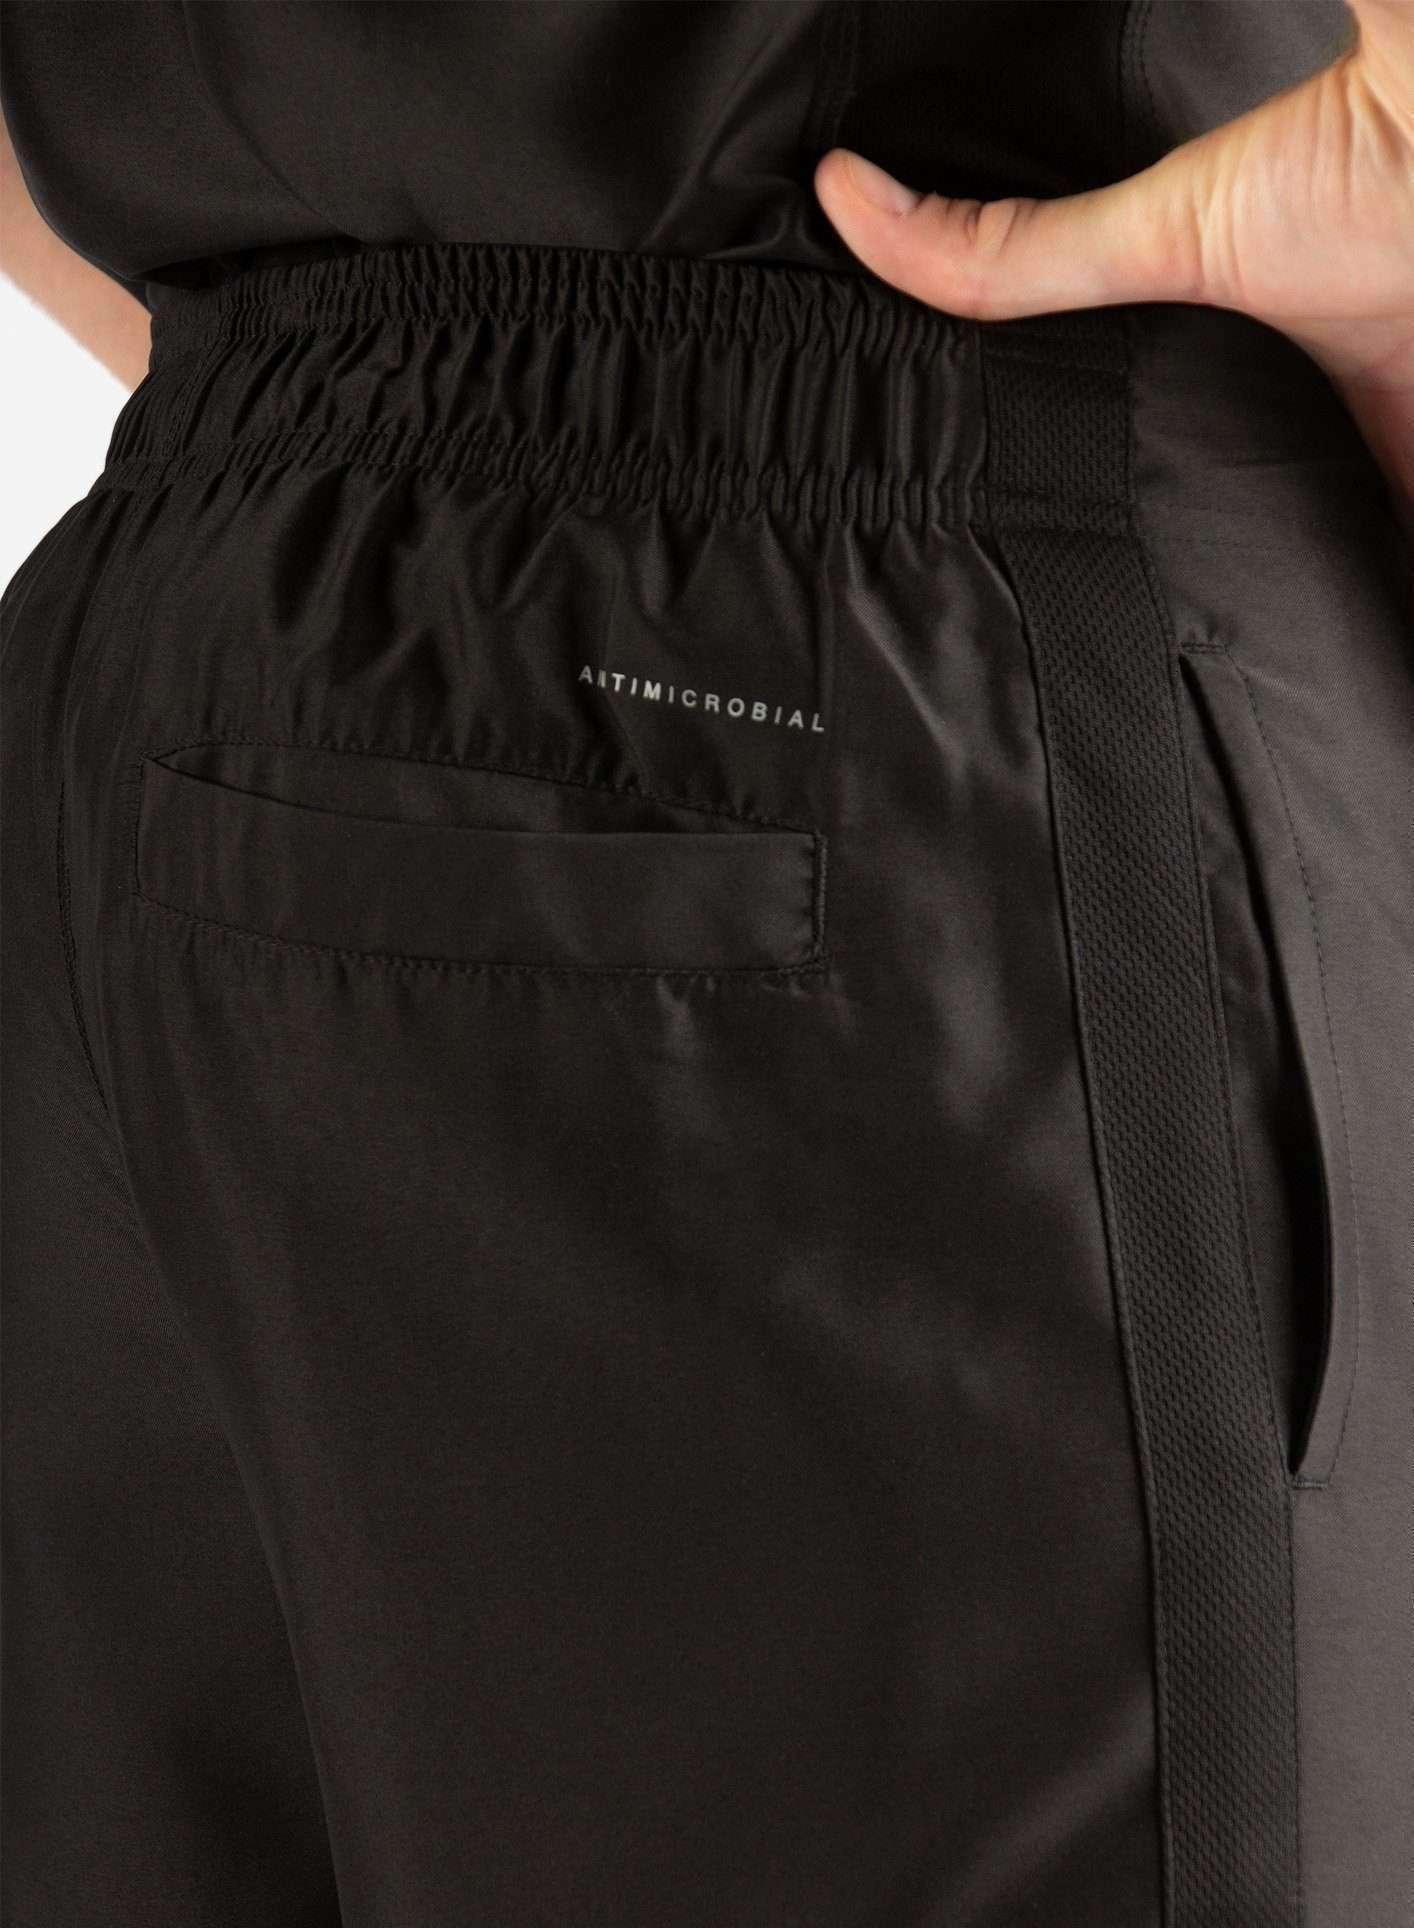 Men's Slim Fit Scrub Pants in Real Black Back Pocket View